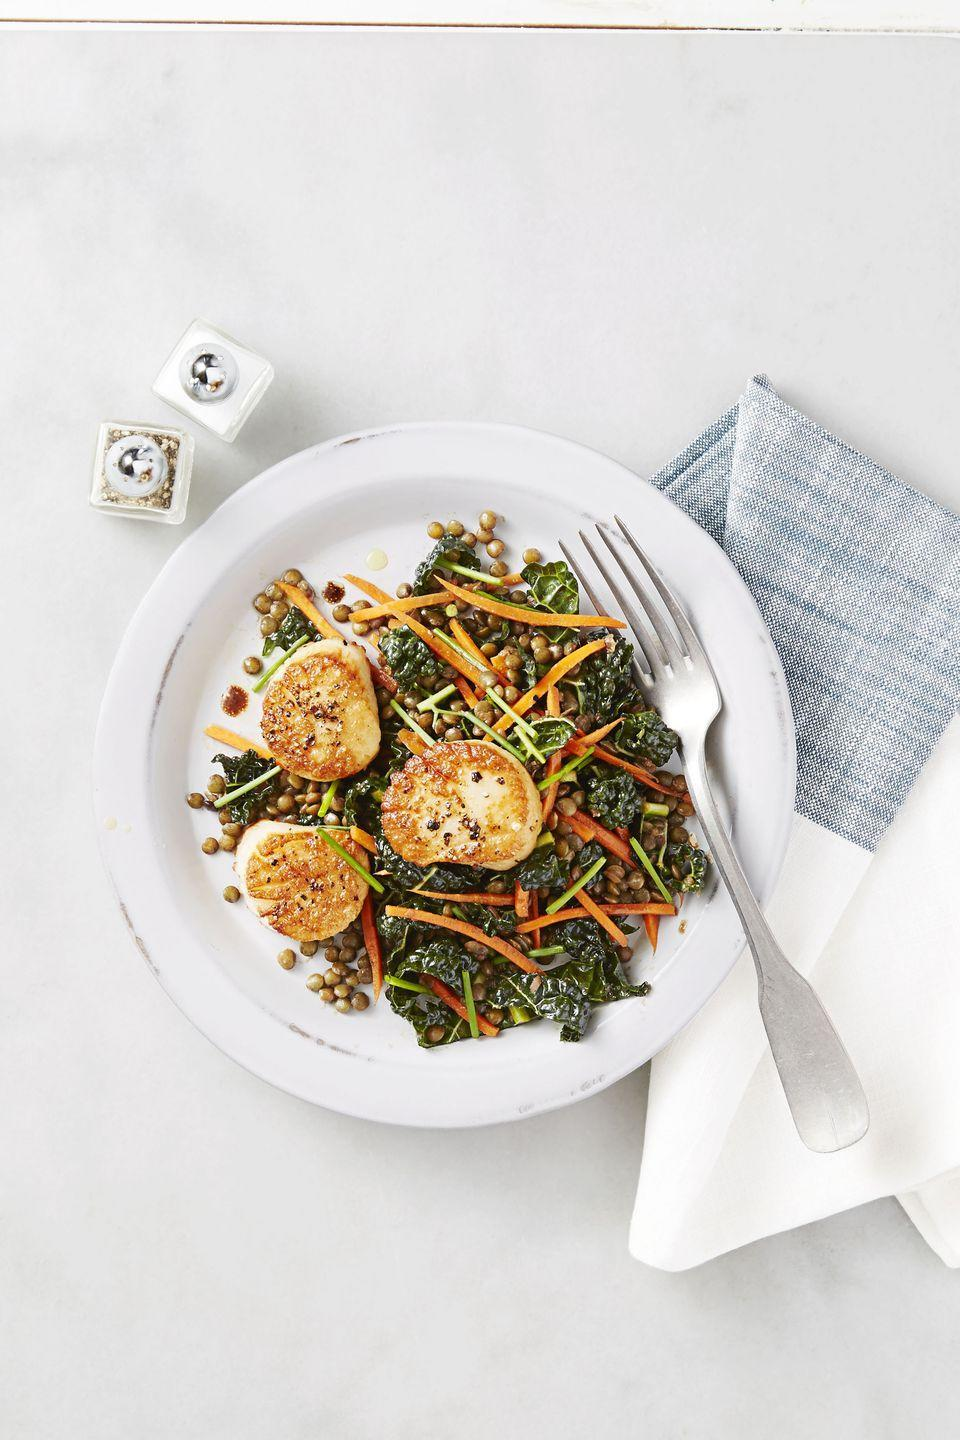 """<p>On Wednesdays, treat yourself for making it halfway through the week with this fancy feast. Bonus points for pouring yourself a glass of Chardonnay —you deserve it!</p><p><em><a href=""""https://www.goodhousekeeping.com/food-recipes/a38406/seared-scallops-with-lentil-salad-recipe/"""" rel=""""nofollow noopener"""" target=""""_blank"""" data-ylk=""""slk:Get the recipe for Seared Scallops with Lentil Salad »"""" class=""""link rapid-noclick-resp"""">Get the recipe for Seared Scallops with Lentil Salad »</a></em></p>"""